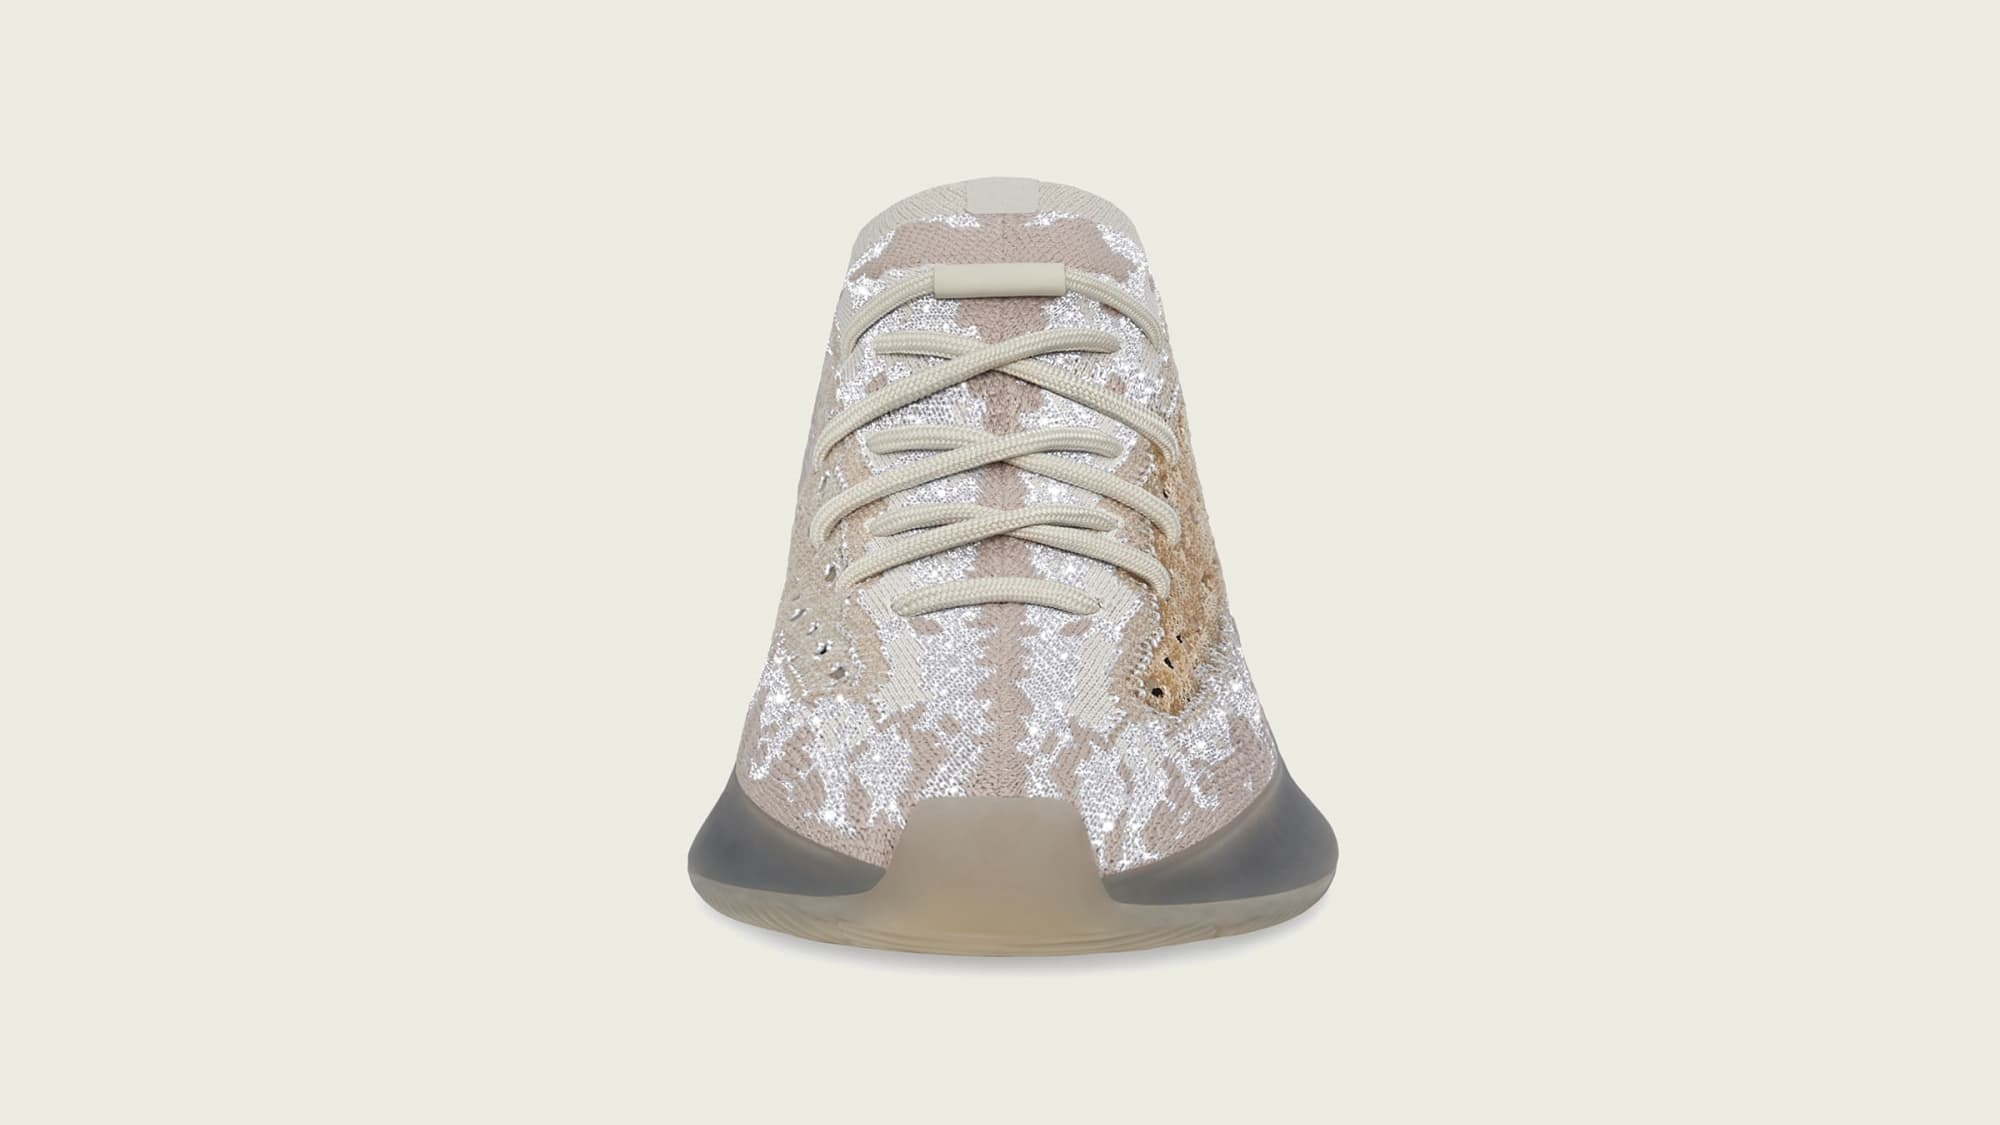 Adidas Yeezy Boost 380 'Pepper Reflective' FZ4977 Front